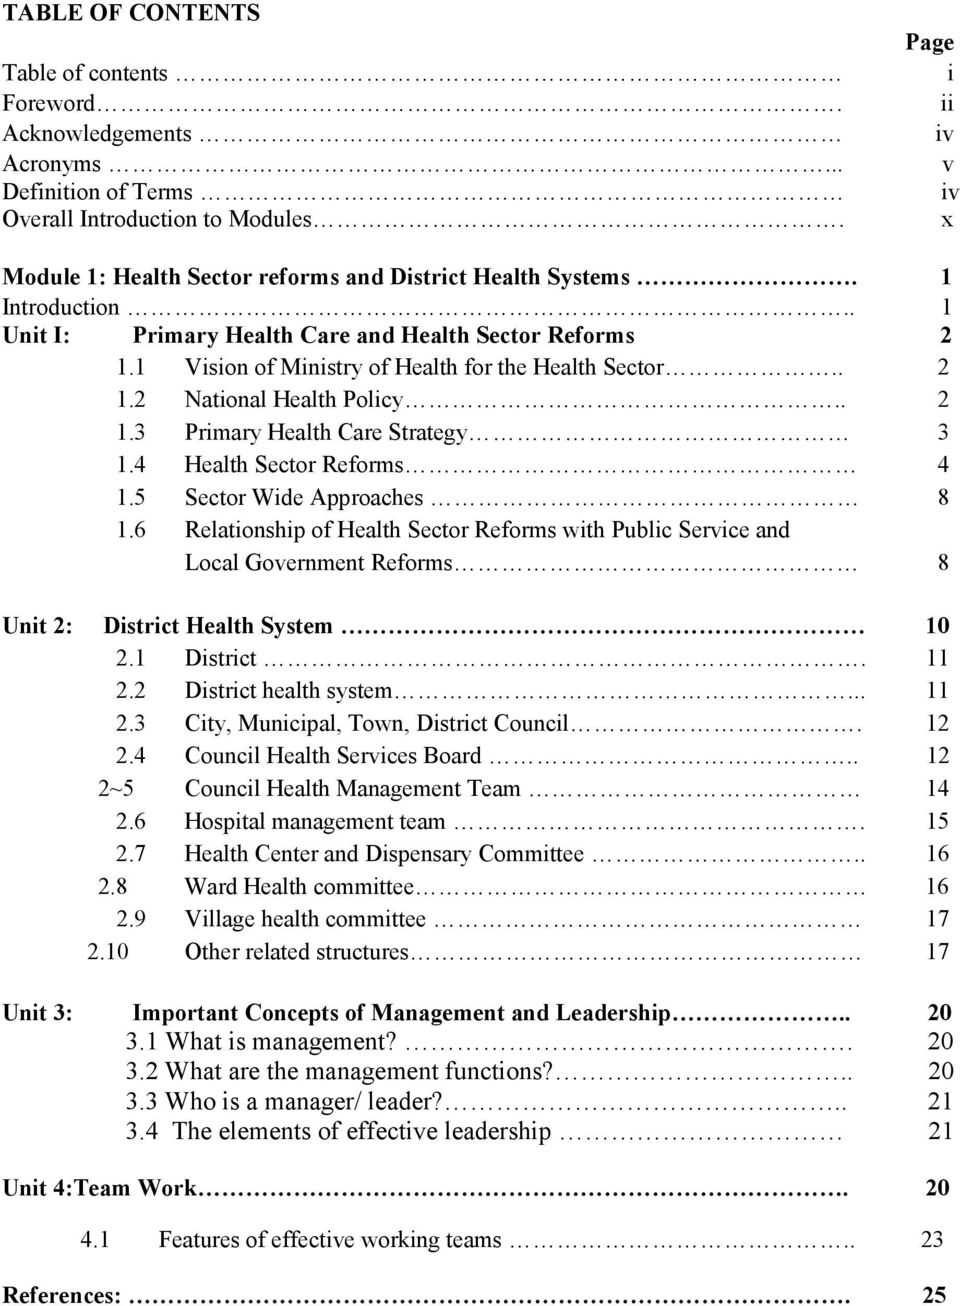 1 Vision of Ministry of Health for the Health Sector.. 2 1.2 National Health Policy.. 2 1.3 Primary Health Care Strategy 3 1.4 Health Sector Reforms 4 1.5 Sector Wide Approaches 8 1.